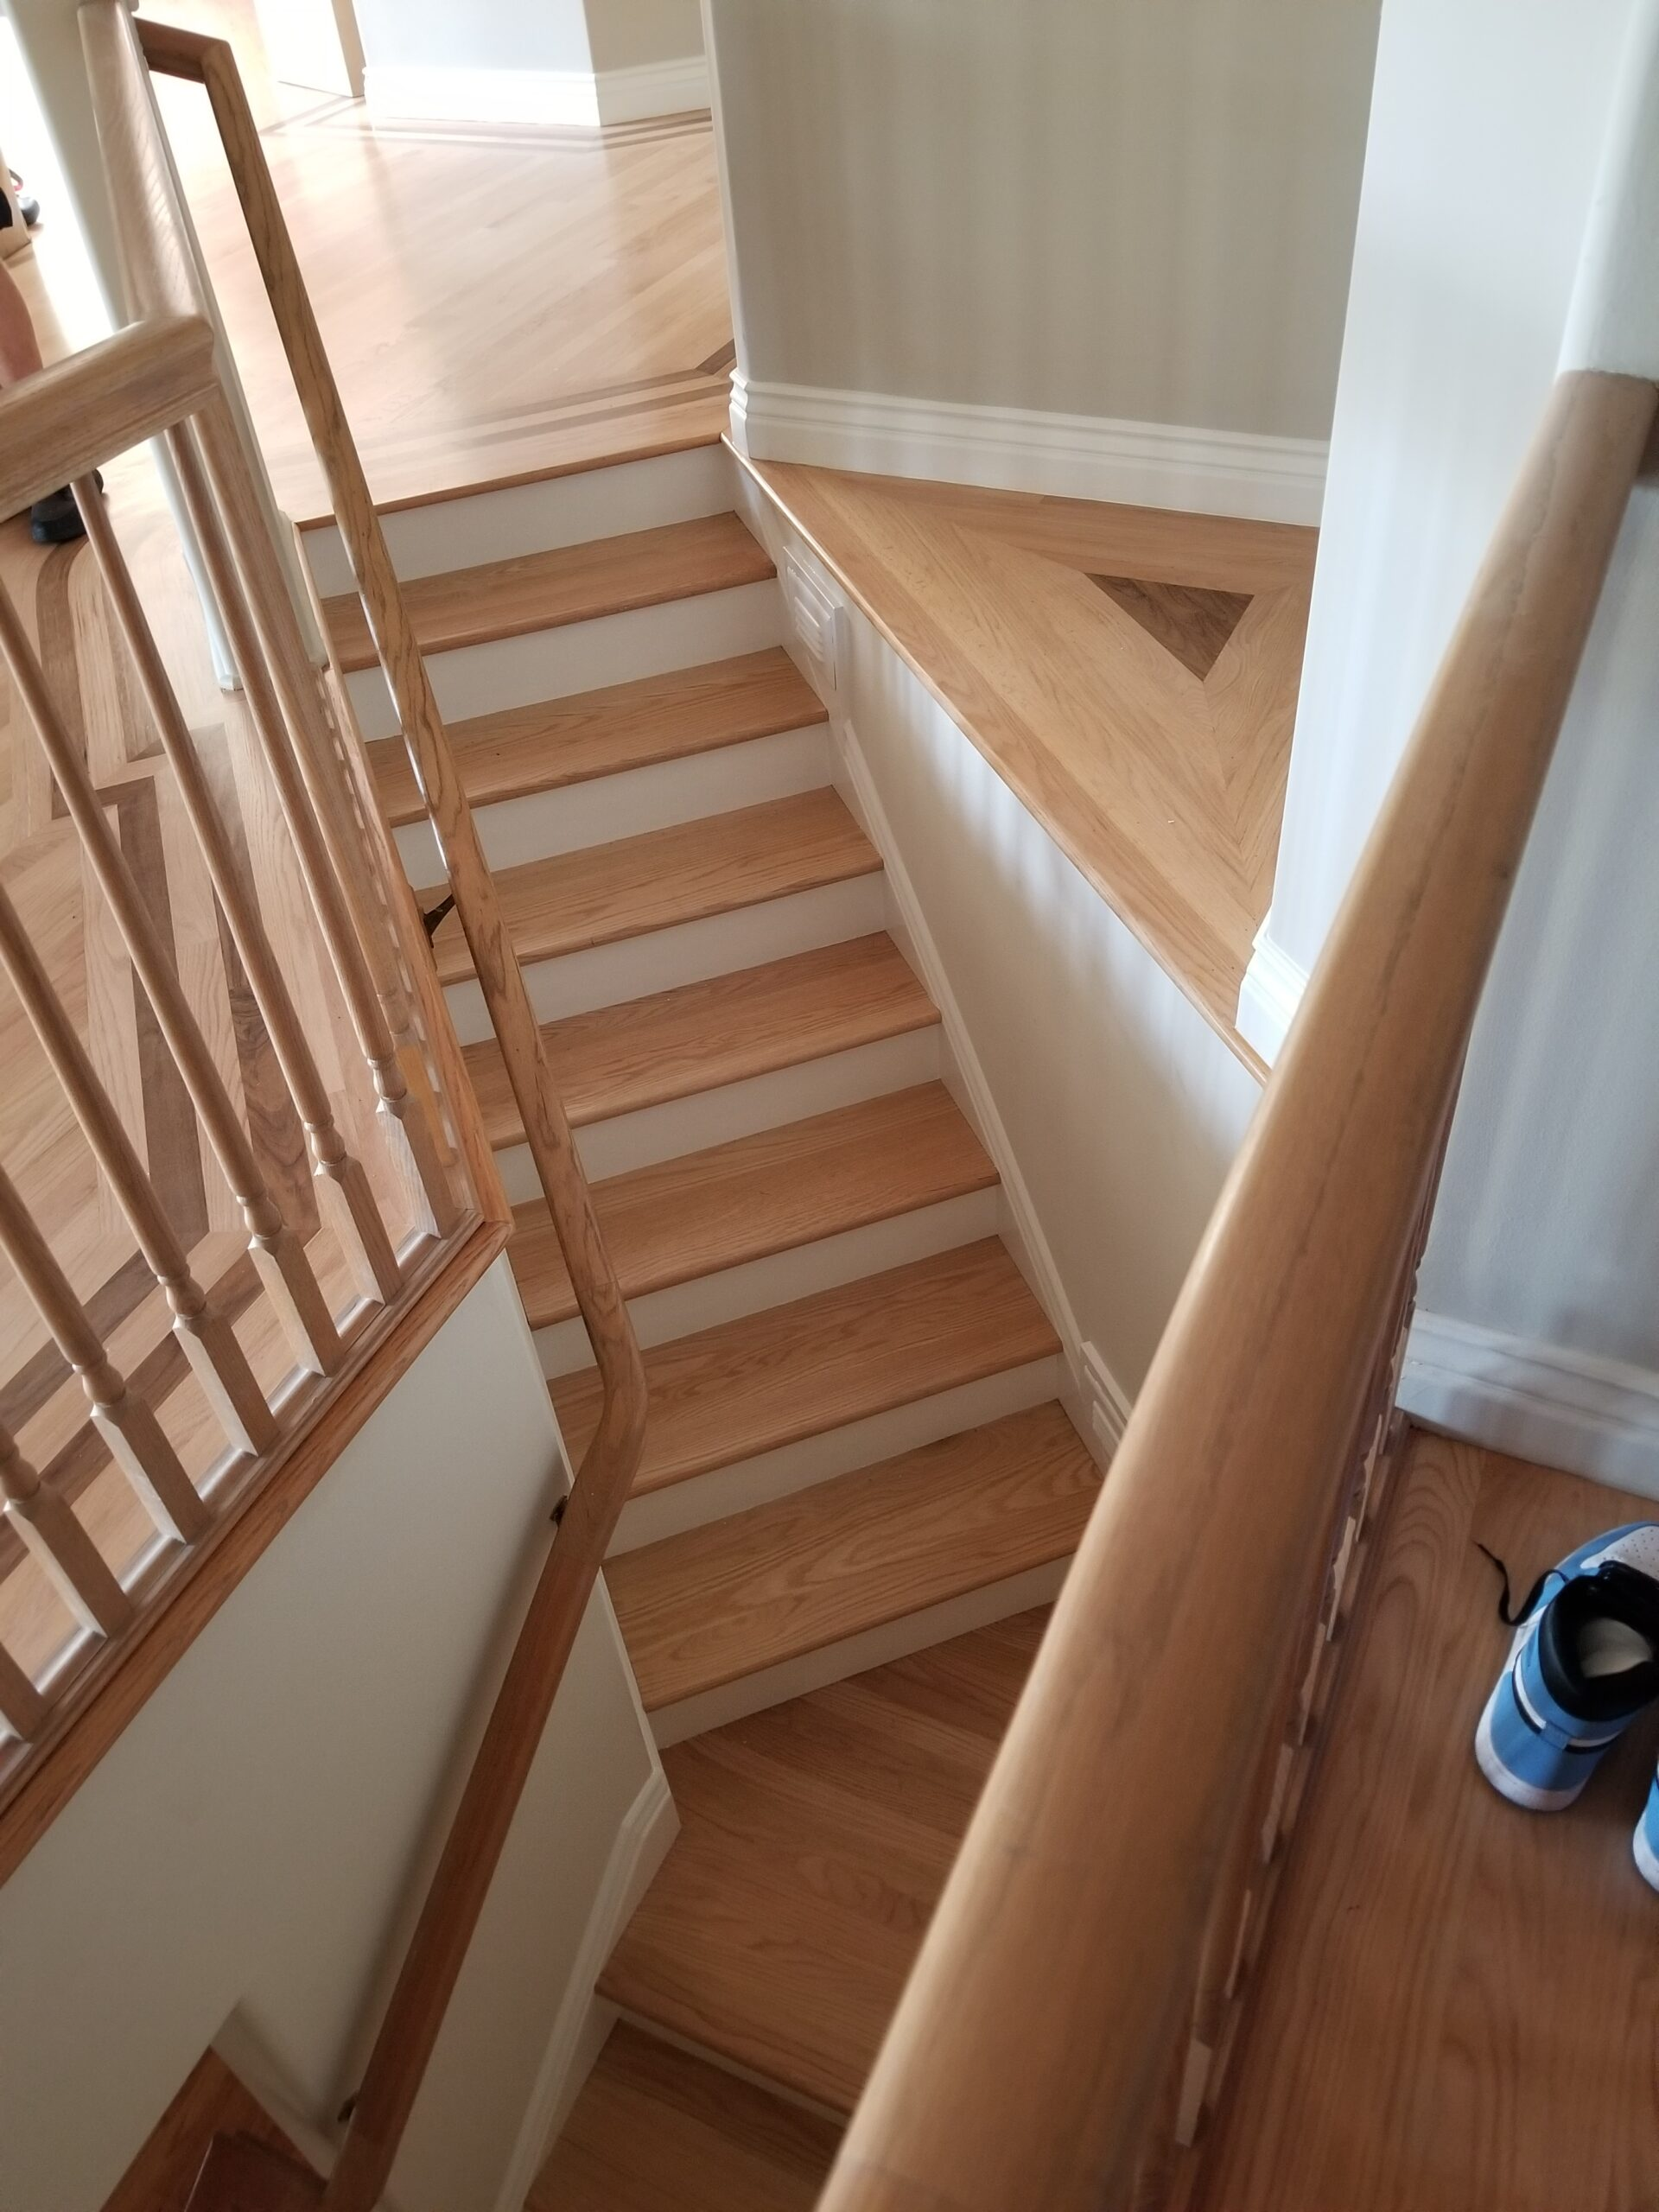 Los Altos Hills residential: red oak stair assembly -- kitchen to downstairs; stain and refinish.